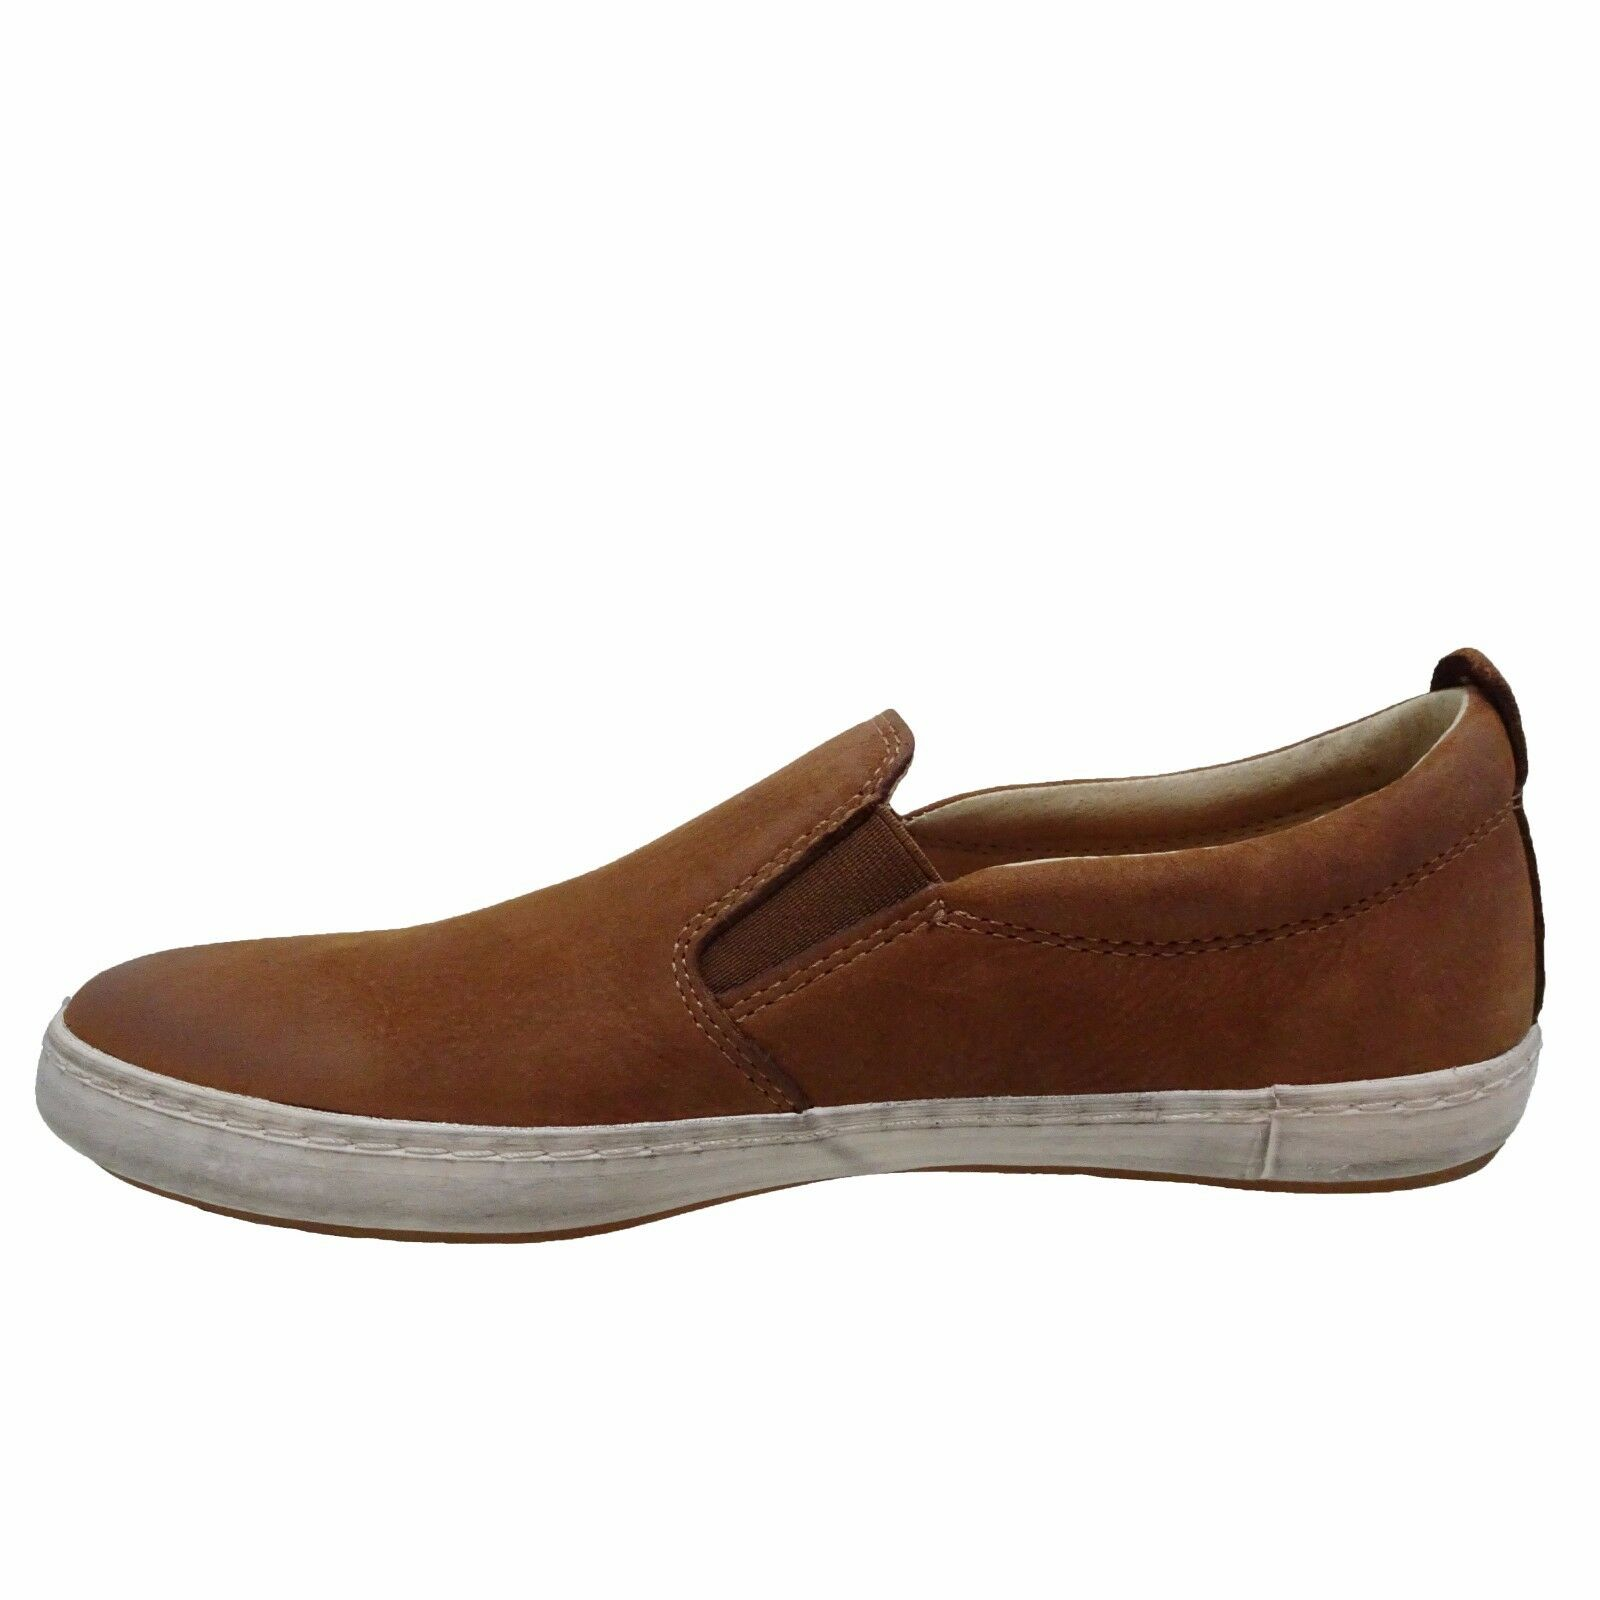 Frye Walking  Uomo Norfolk Slip On Casual Walking Frye Fashion Sneakers Schuhes Kicks 1afe71